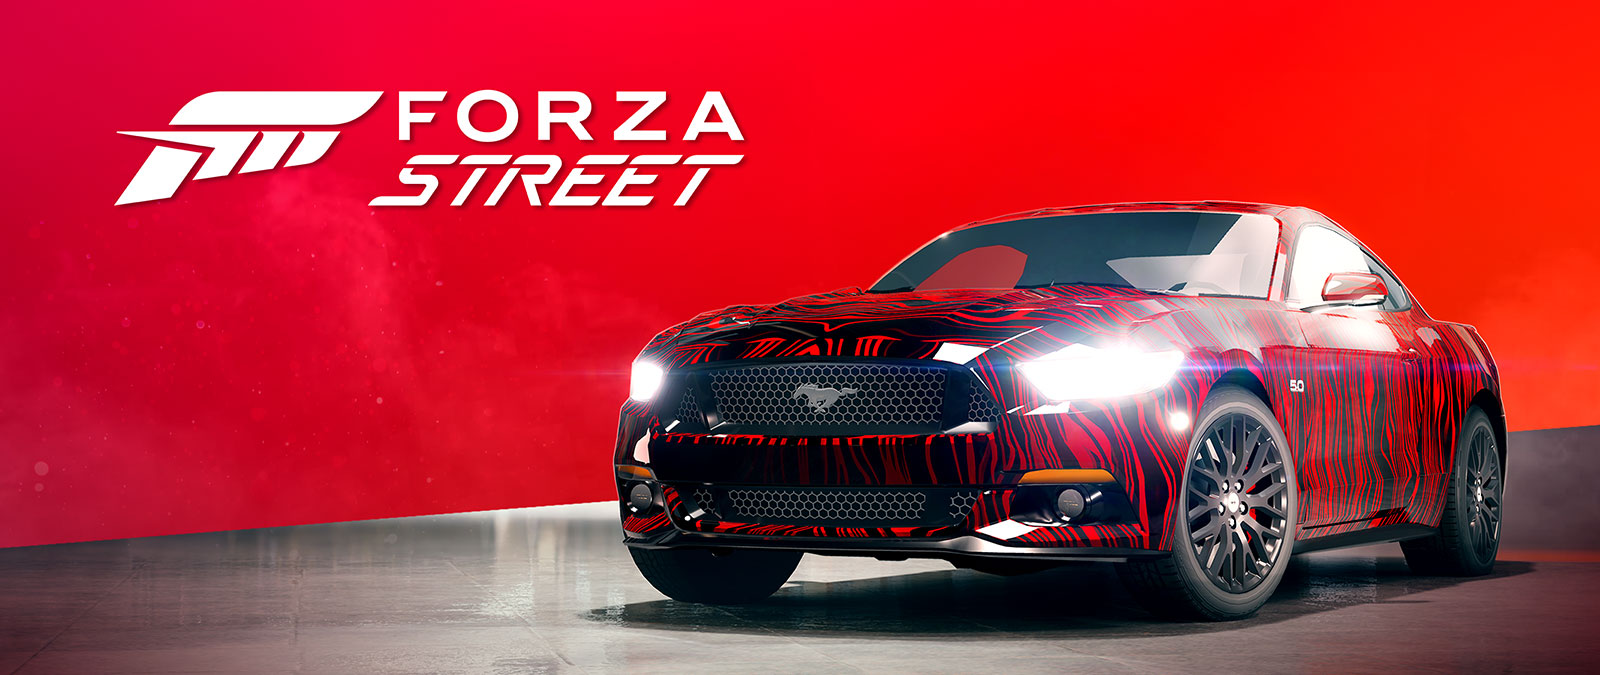 Forza Street logo, 2015 Ford Mustang with galaxy paint